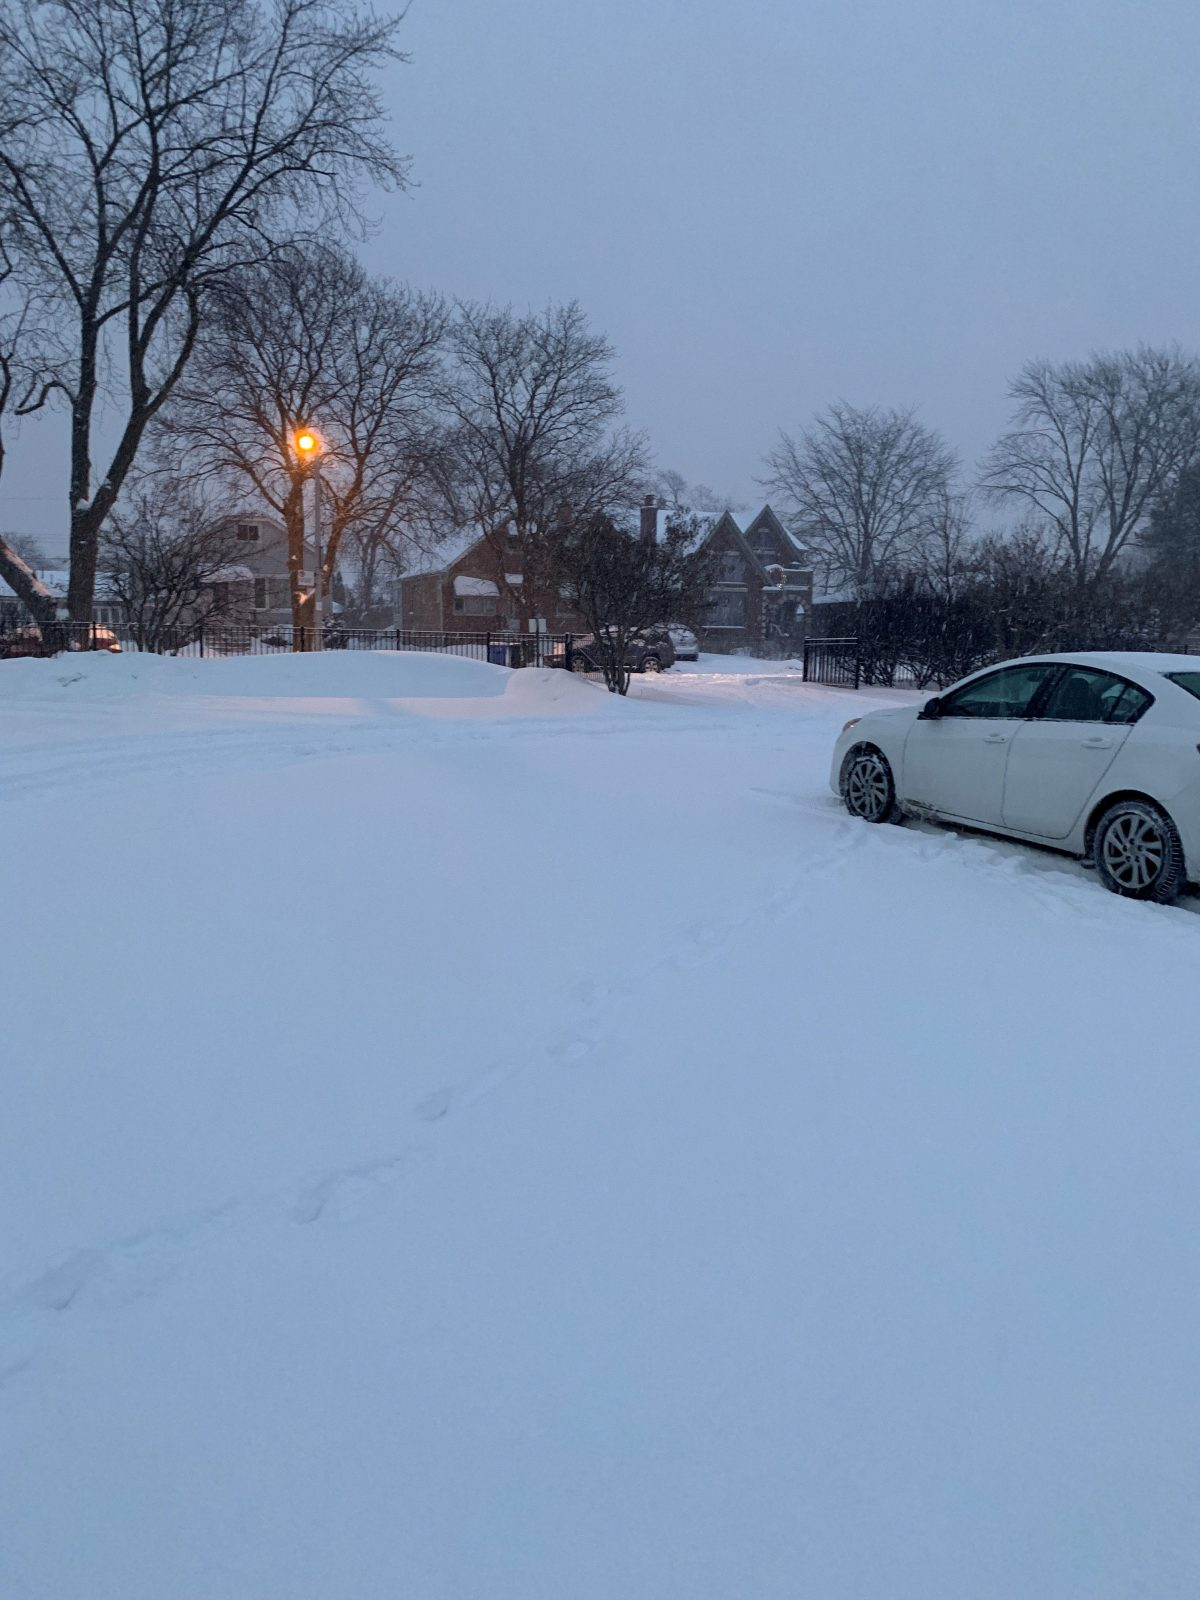 UPDATED: Rank-and-file members weigh in on hazardous snow conditions at schools around the city